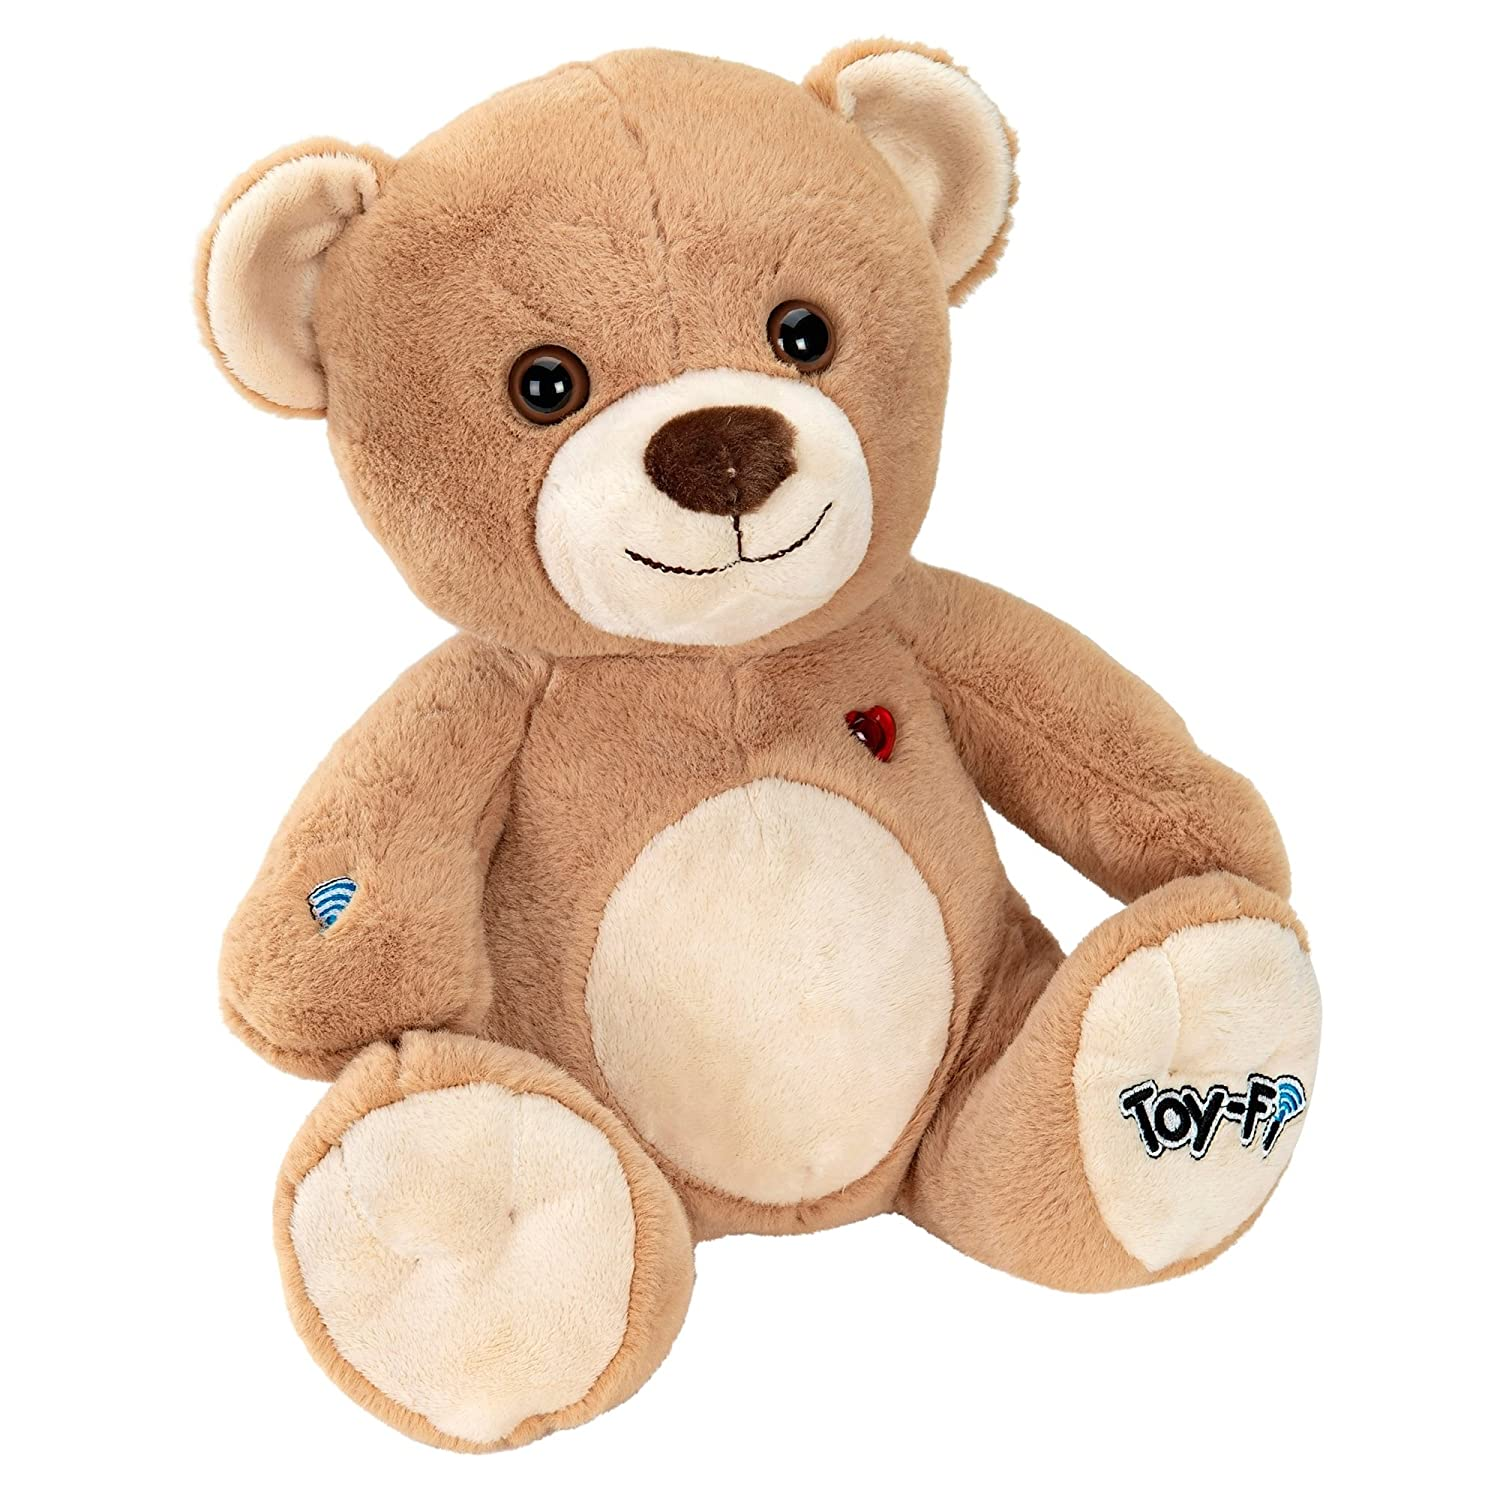 toy fi teddy plush toy amazon co uk toys games